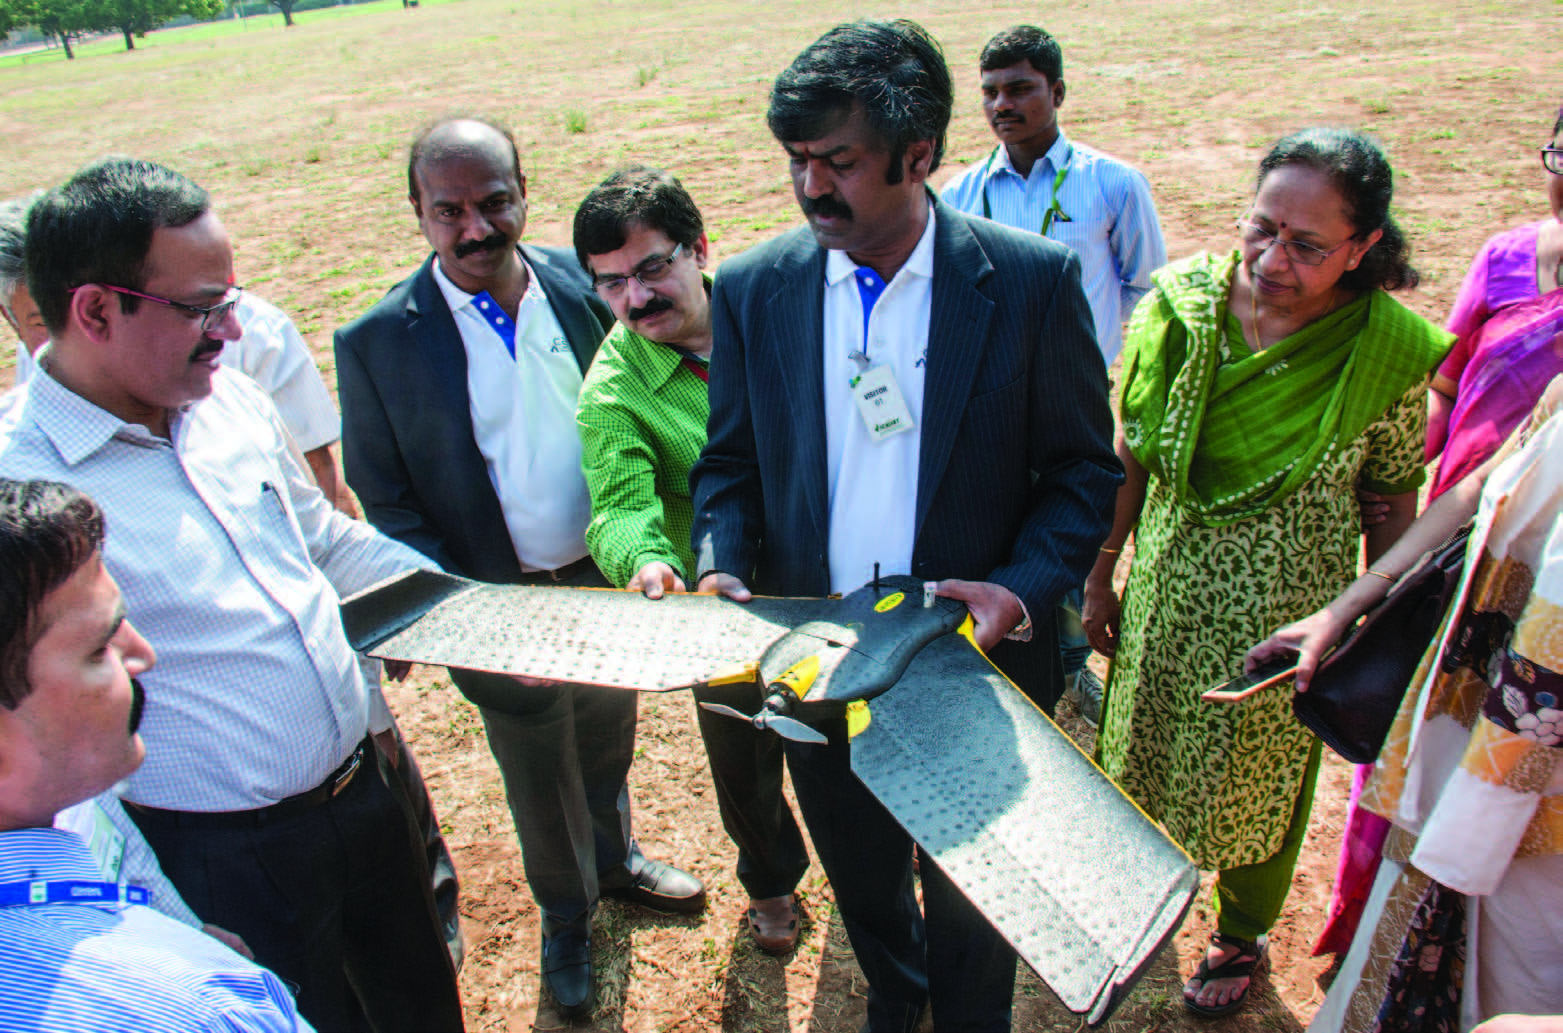 Vinod Kumar Samanthul, Director, Aegis, demonstrates a drone. Photo: PS Rao, ICRISAT